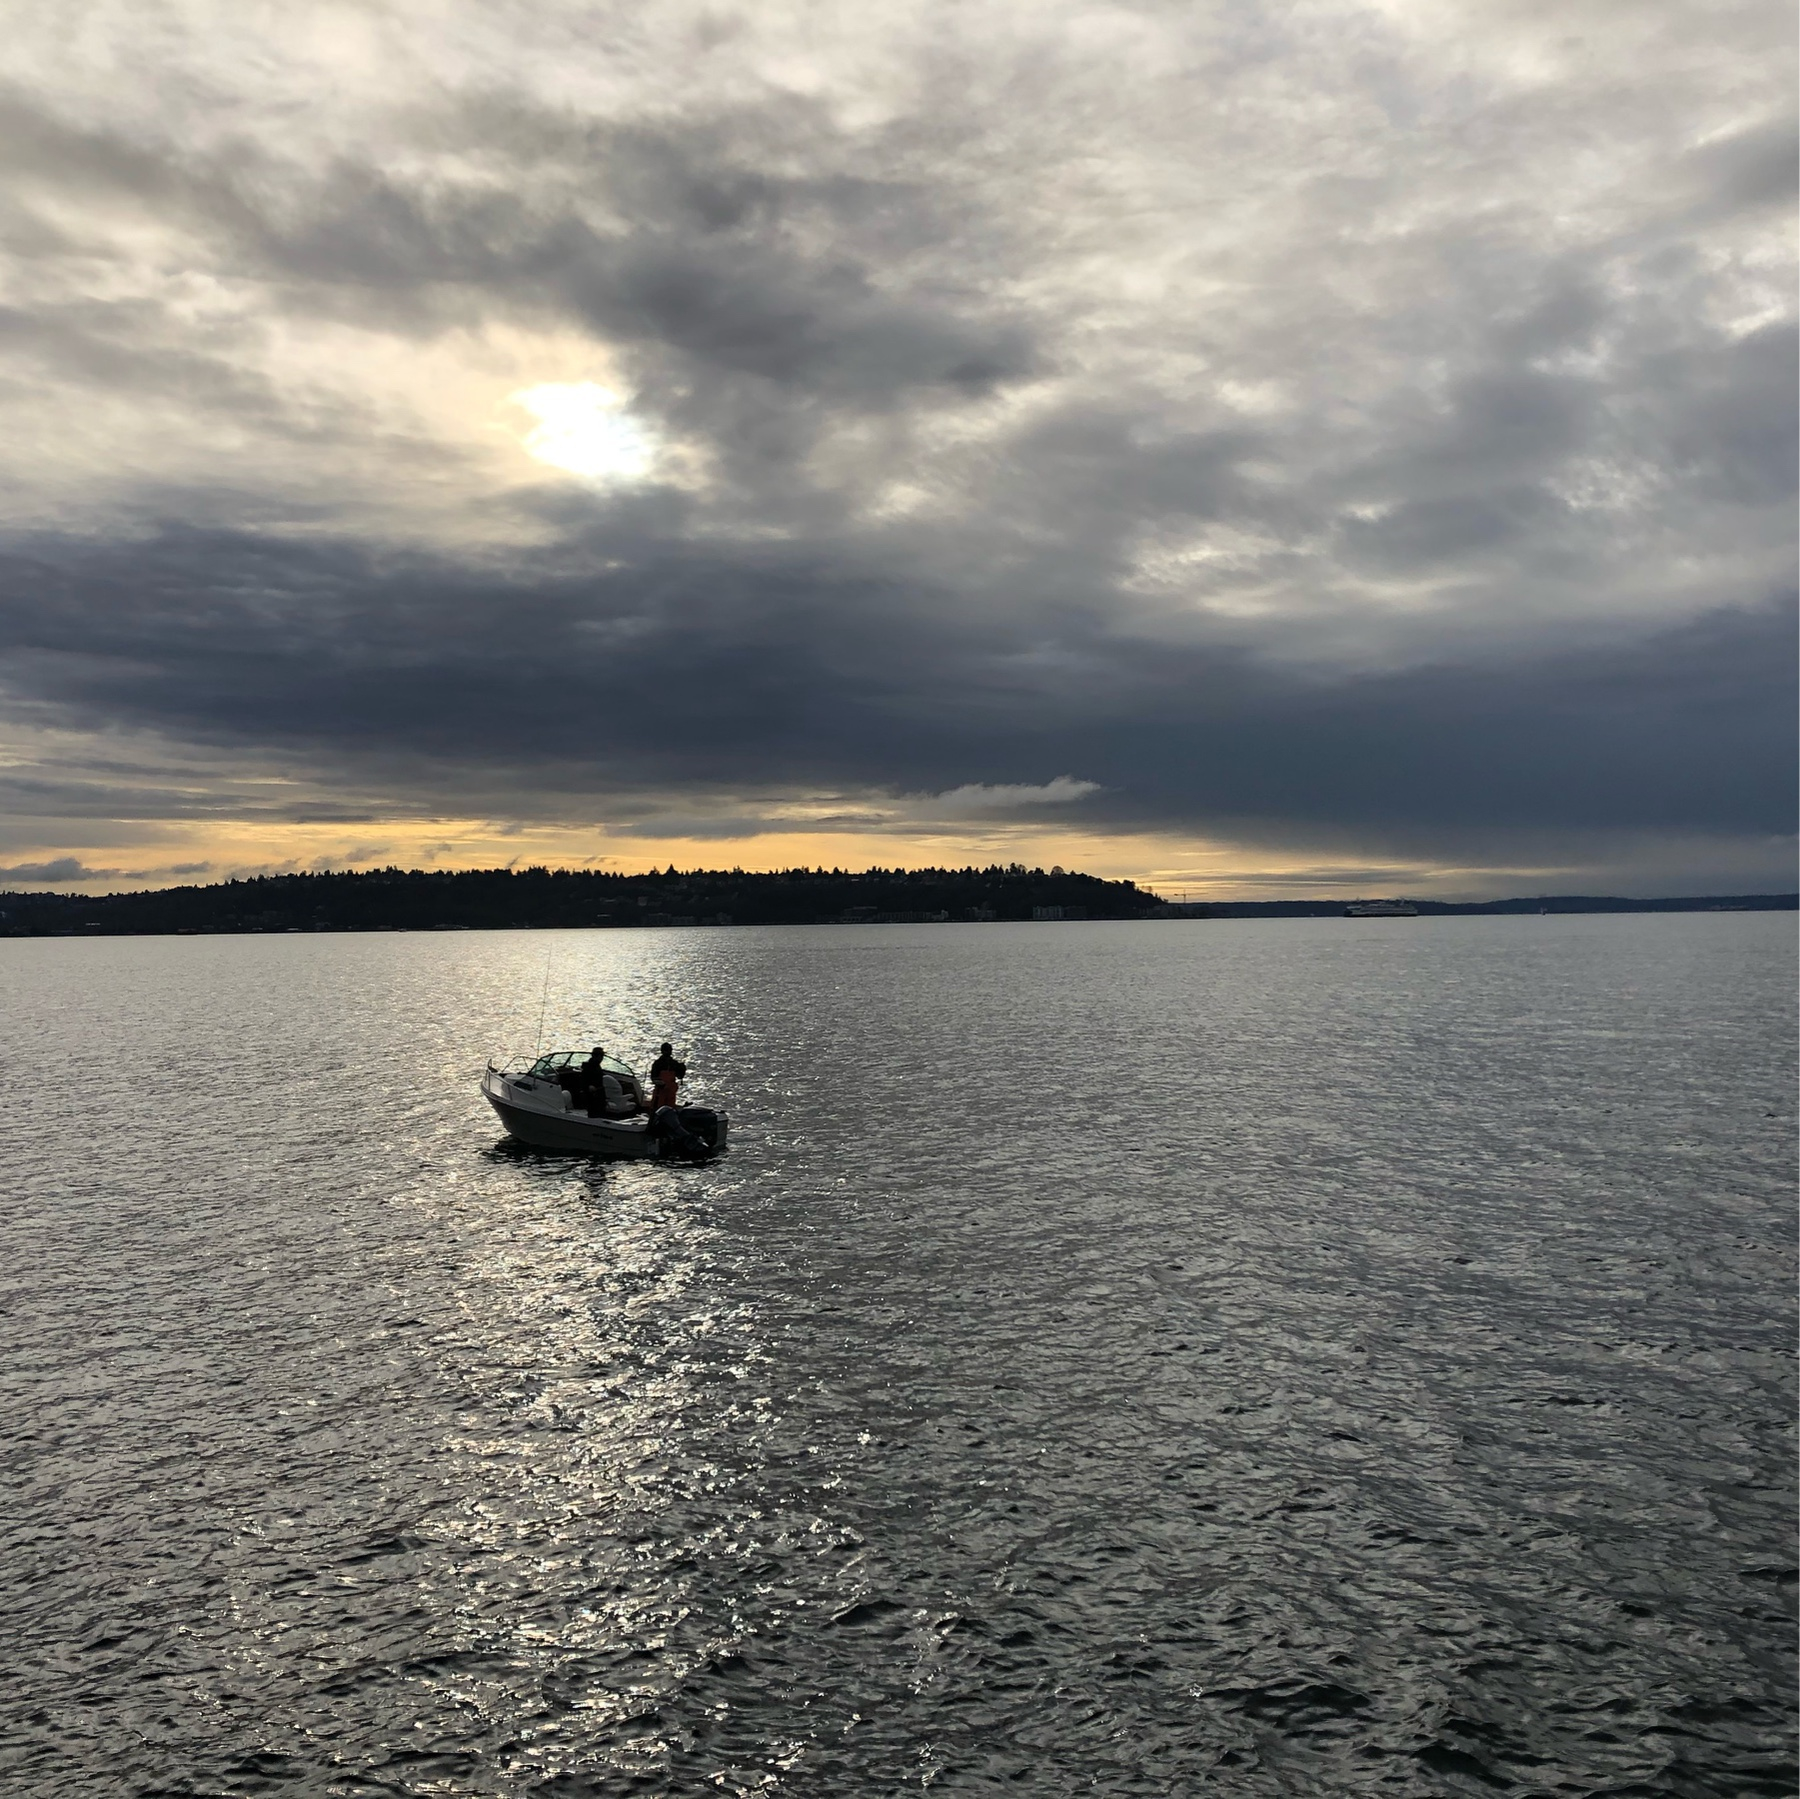 A small fishing boat on pewter colored water, beneath a dramatic cloudy sky.